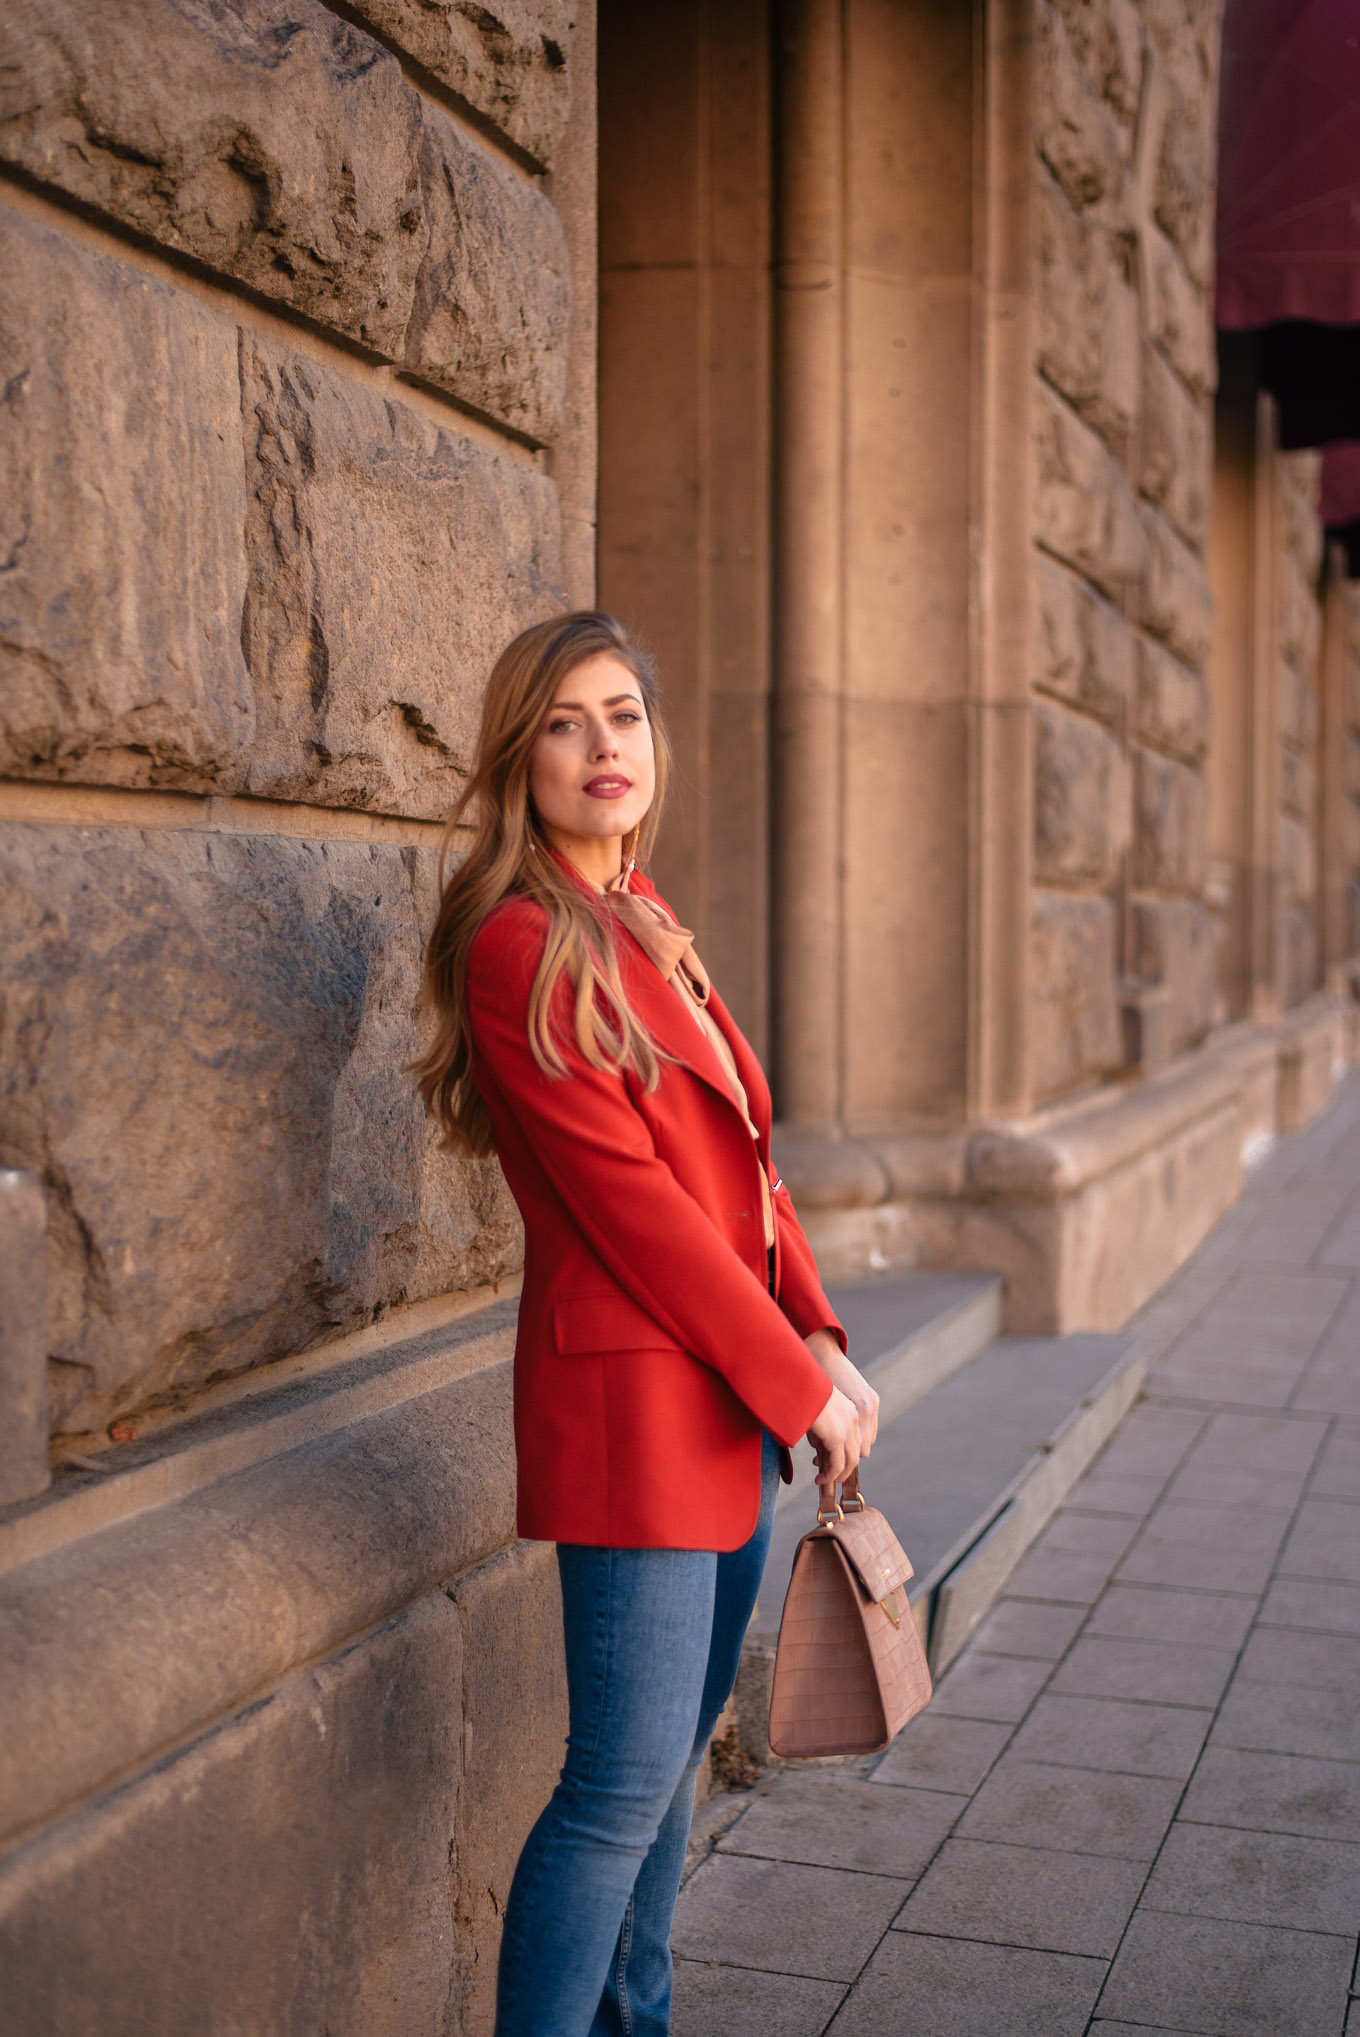 Wearing a red blazer for spring summer 2019